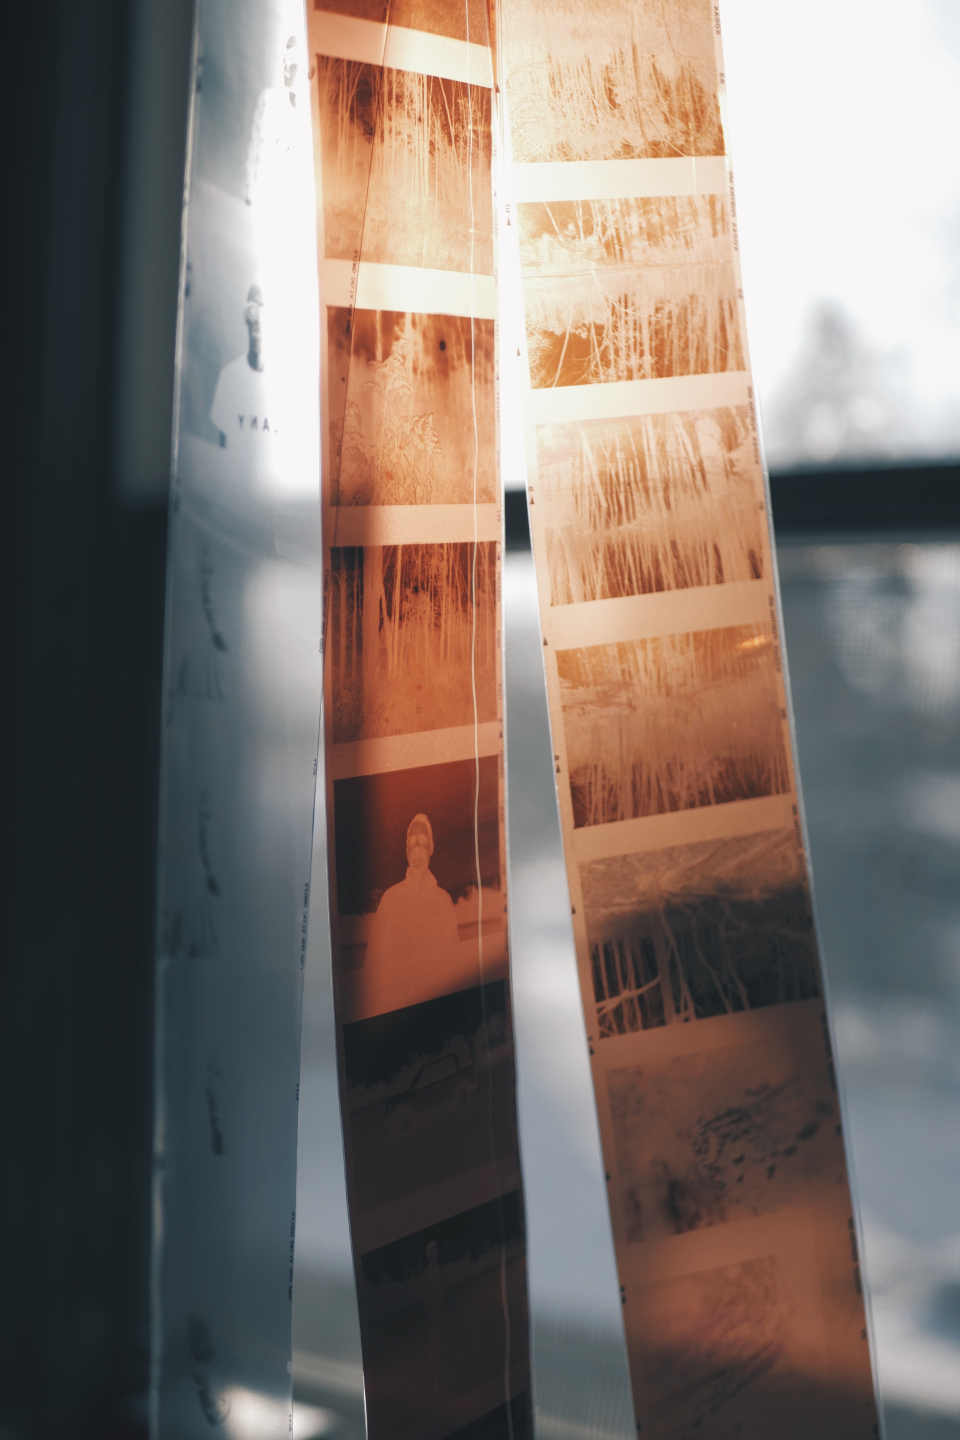 RAW photos is a kind of negatives in analog photography